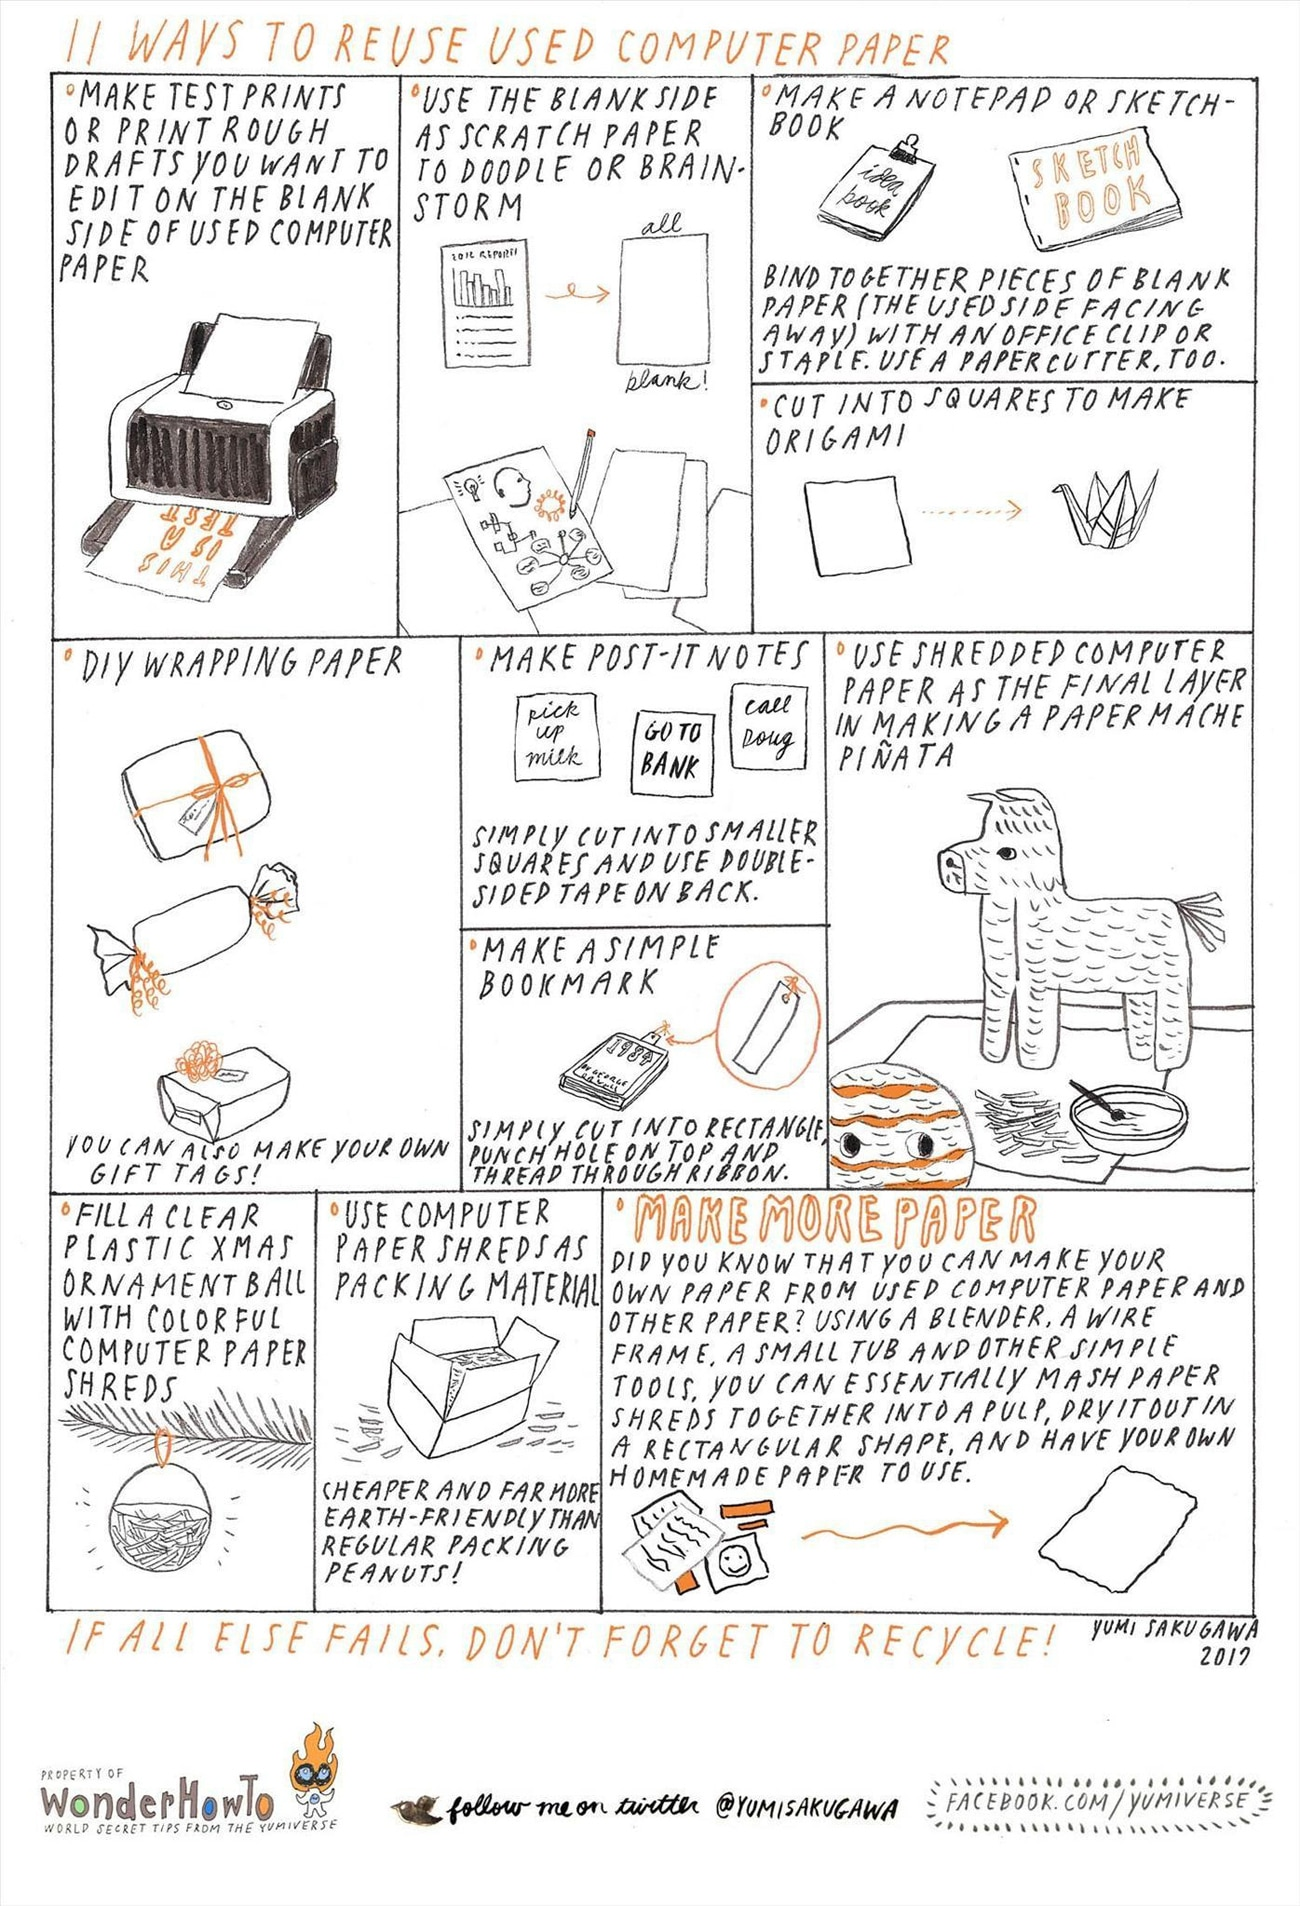 ways-to-reuse-computer-paper